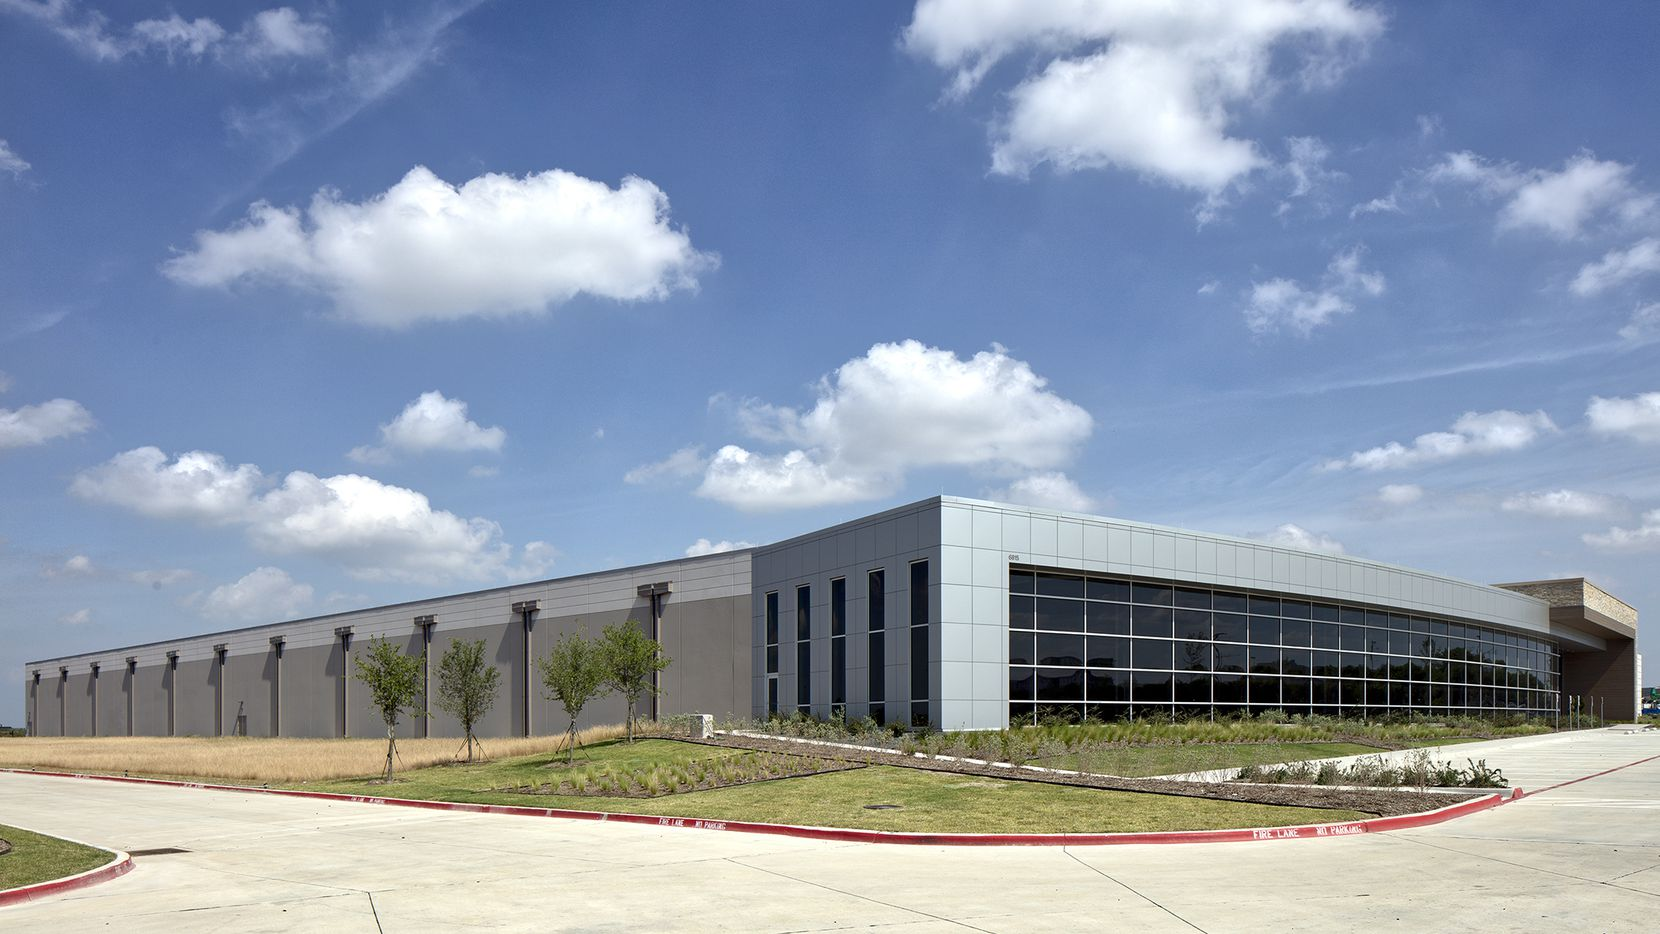 TMGcore paid $60 million for this Plano data center in a deal inked this week.